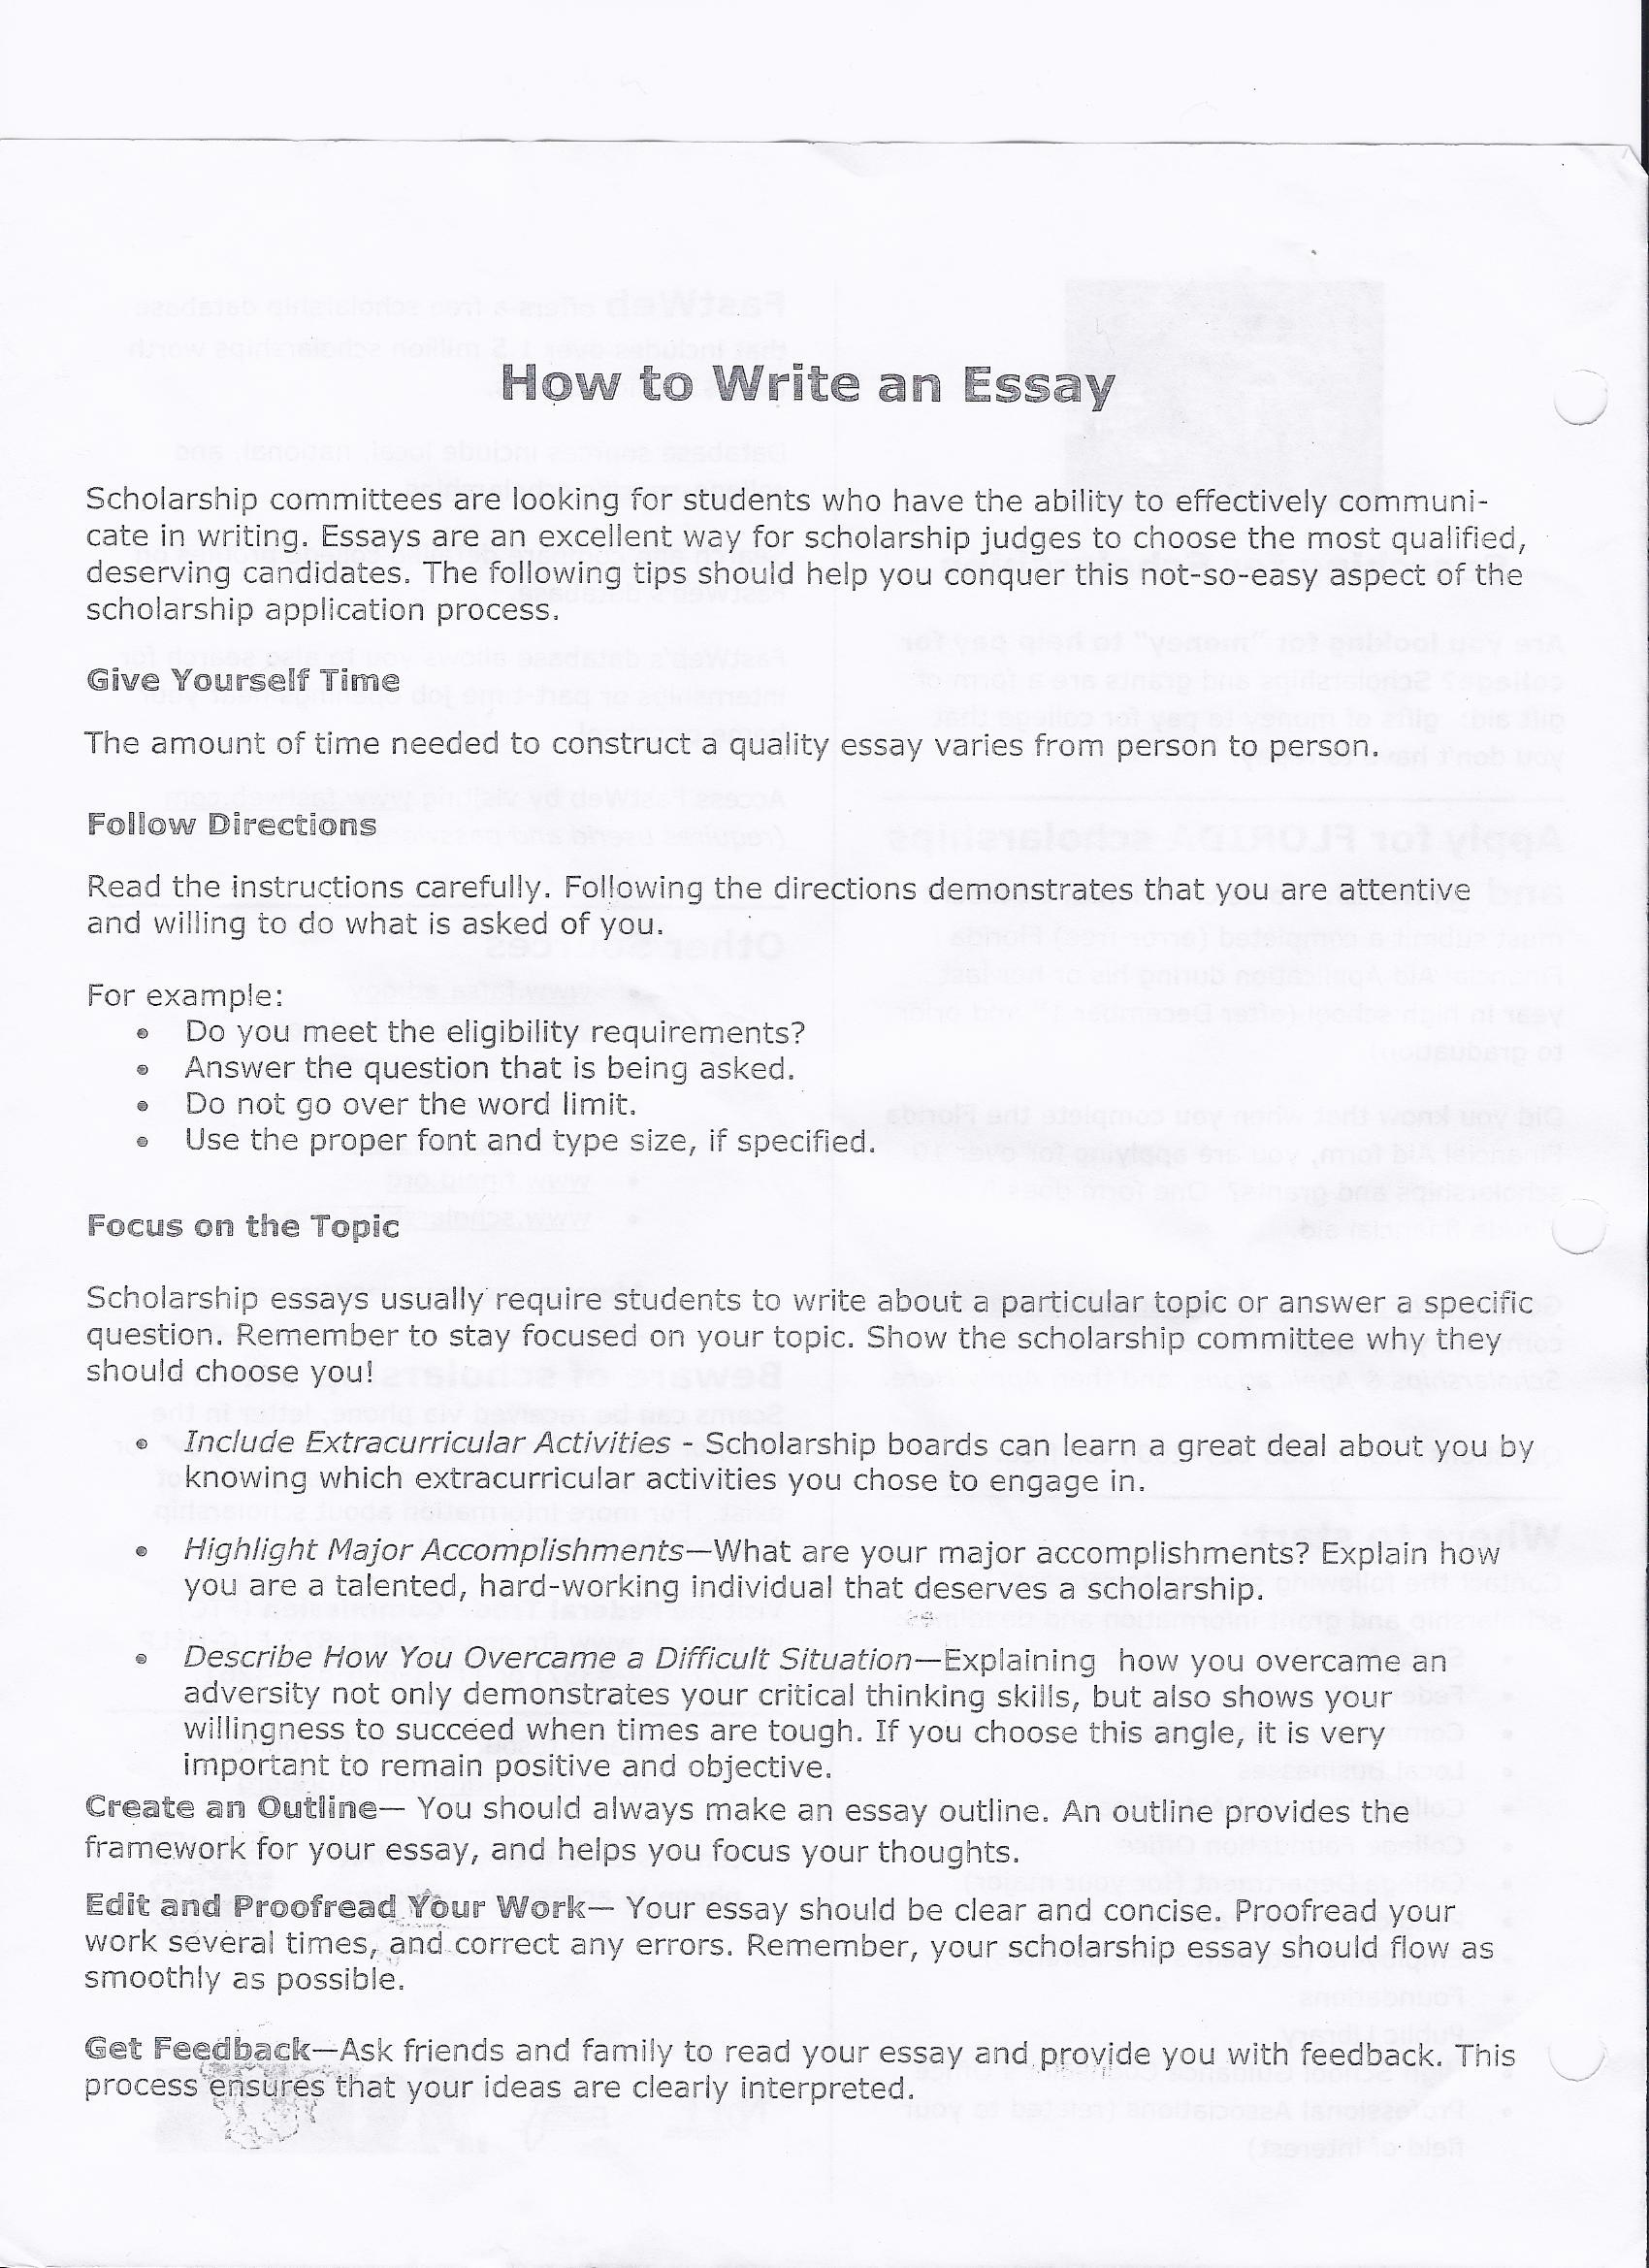 Essays written by college students